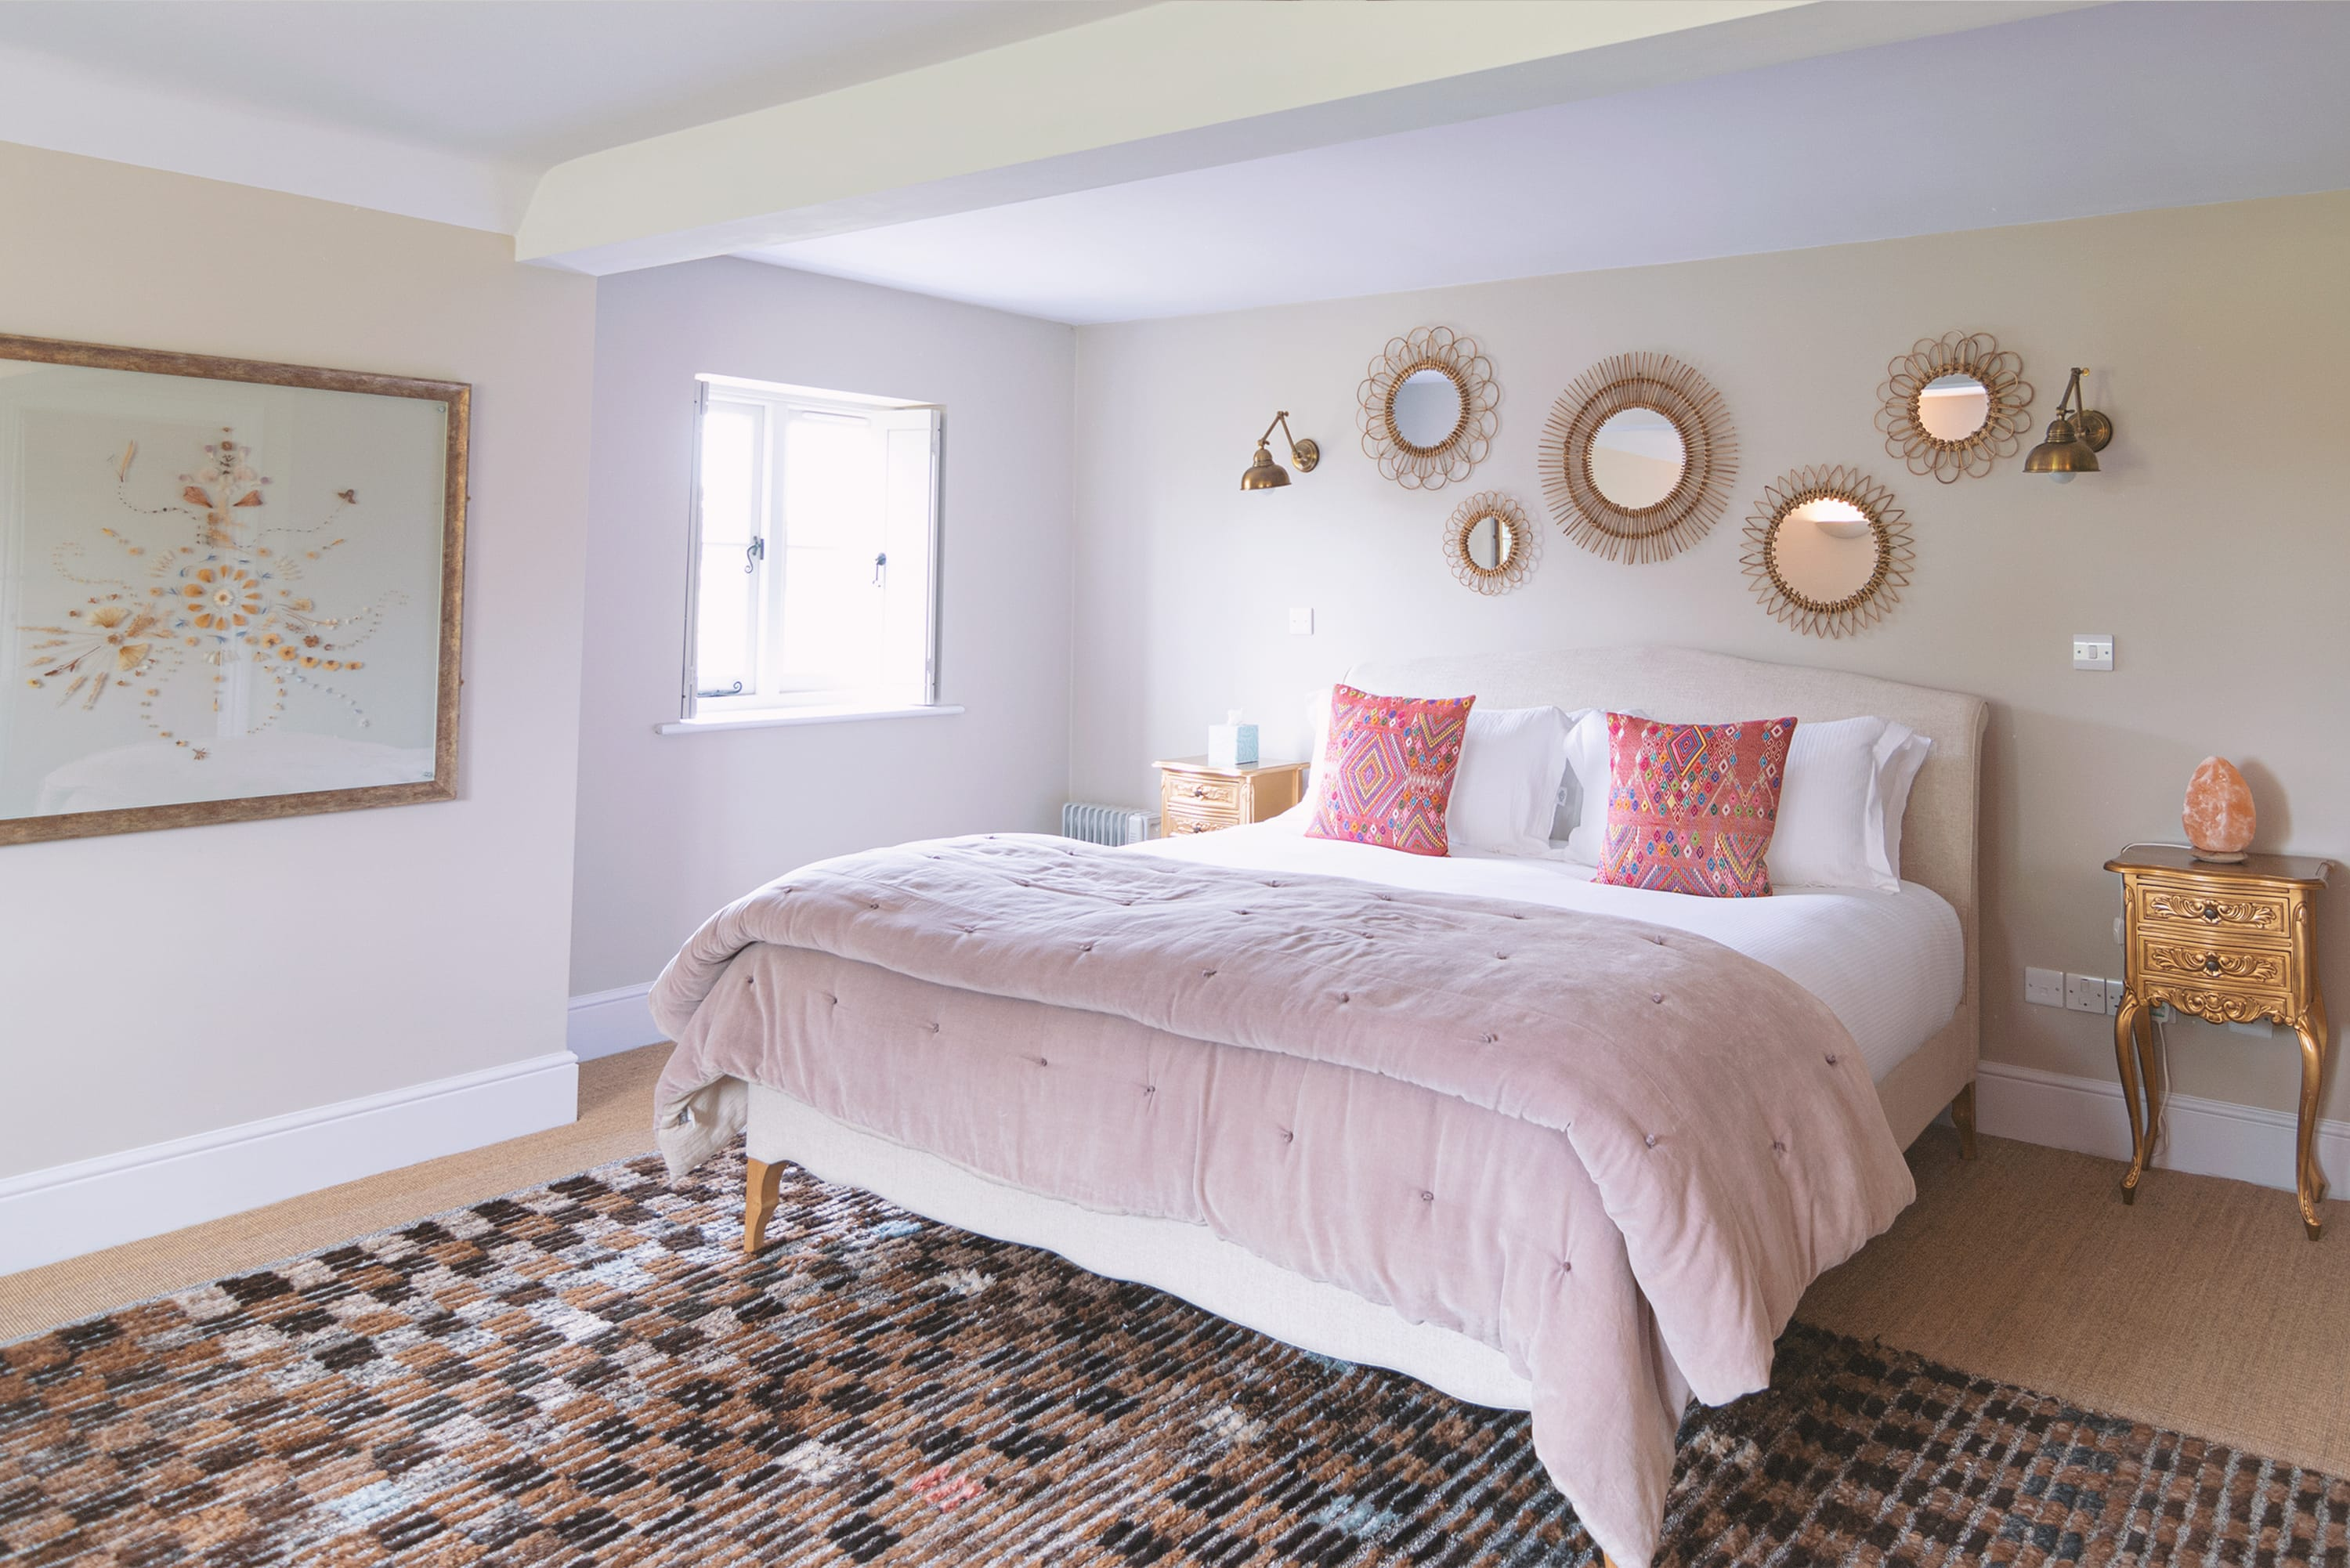 Master bedroom in the farmhouse